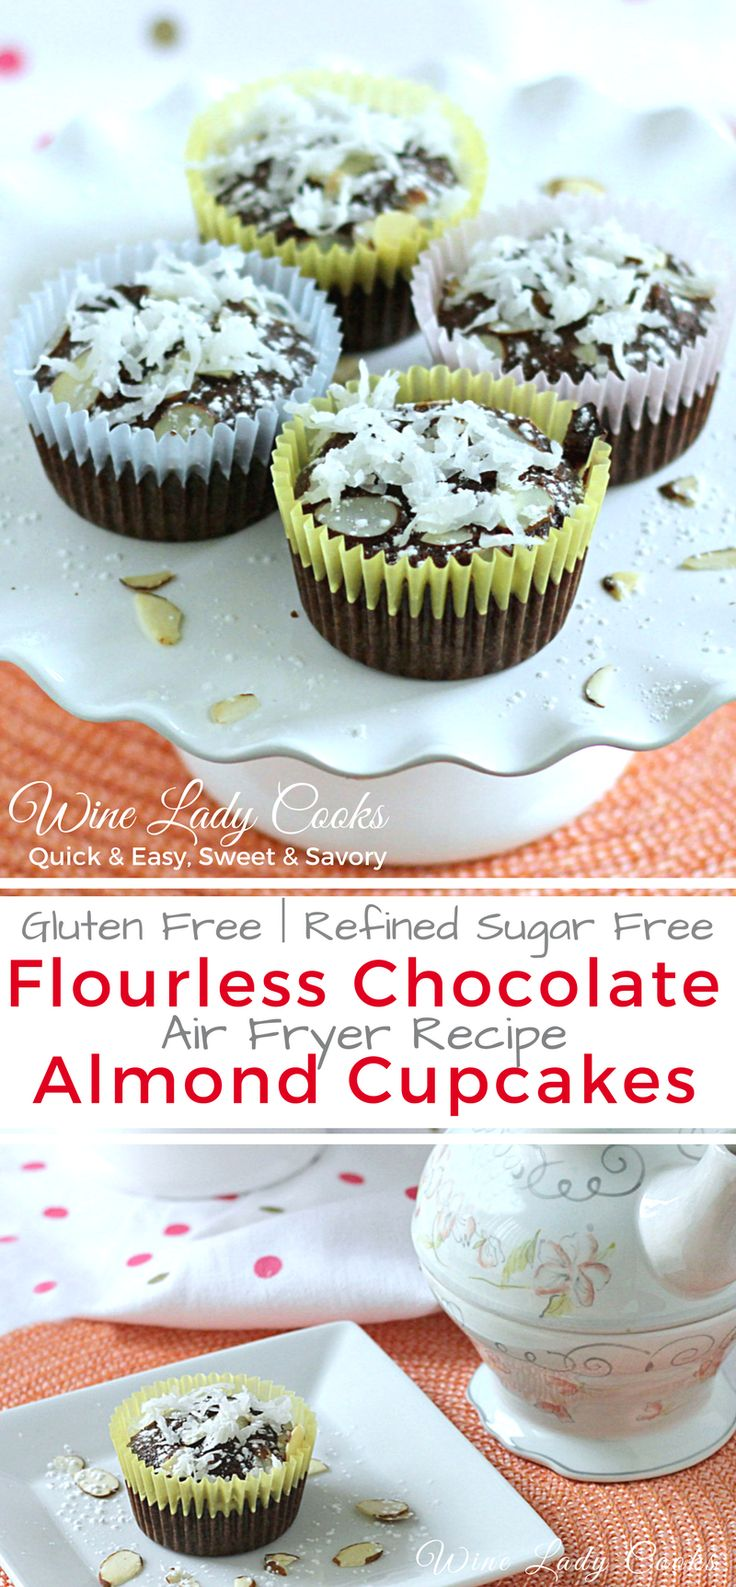 Flourless Chocolate Almond Cupcake small batch air fryer recipe, quick and easy to make and gluten free. Click thru for easy recipe. #flourless #almond #cupcakes #glutenfree #dessert #airfryer #Mother'sDay